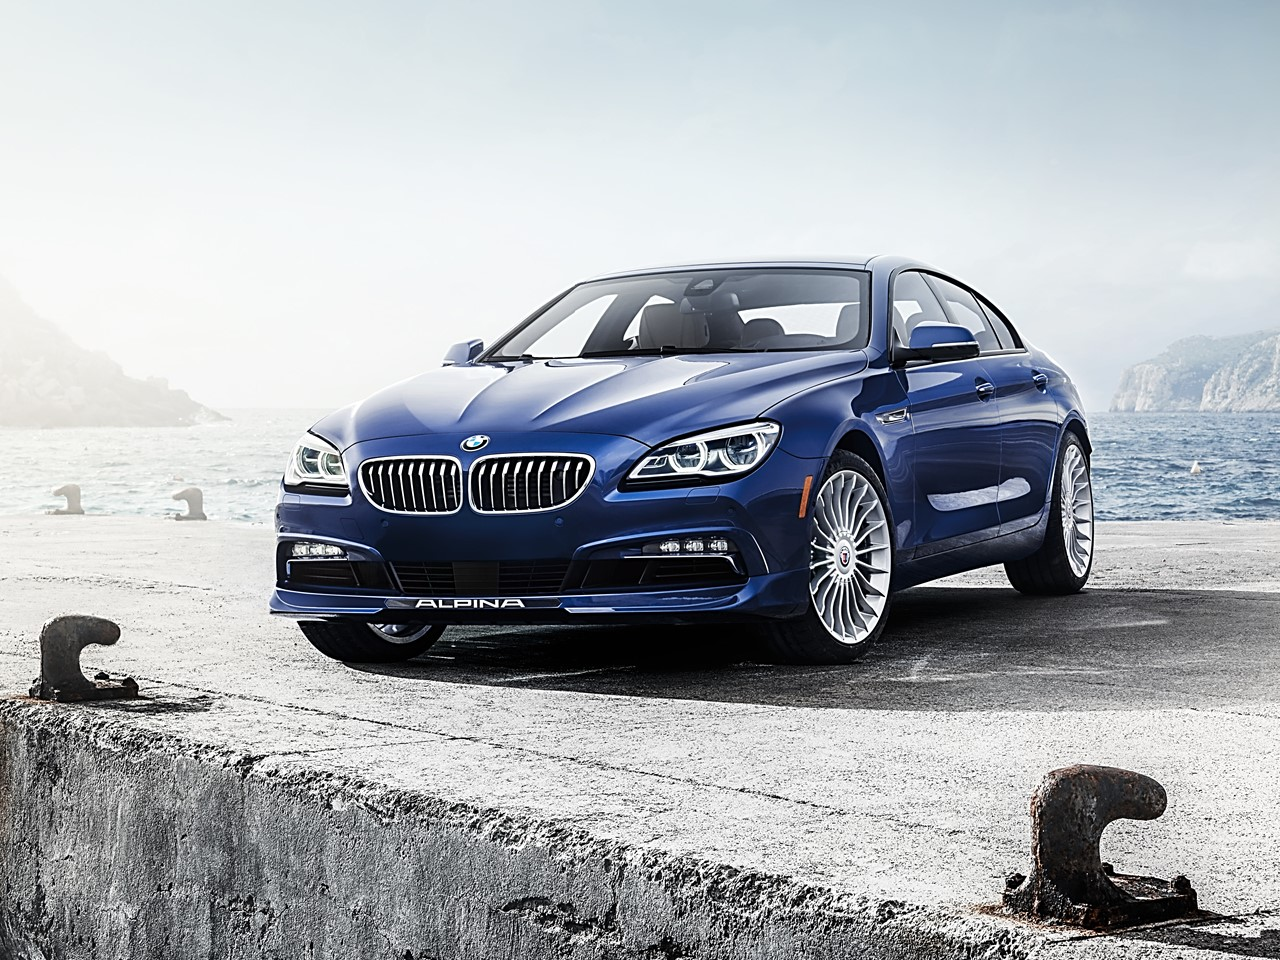 2016 Alpina B6 xDrive Gran Coupe 6